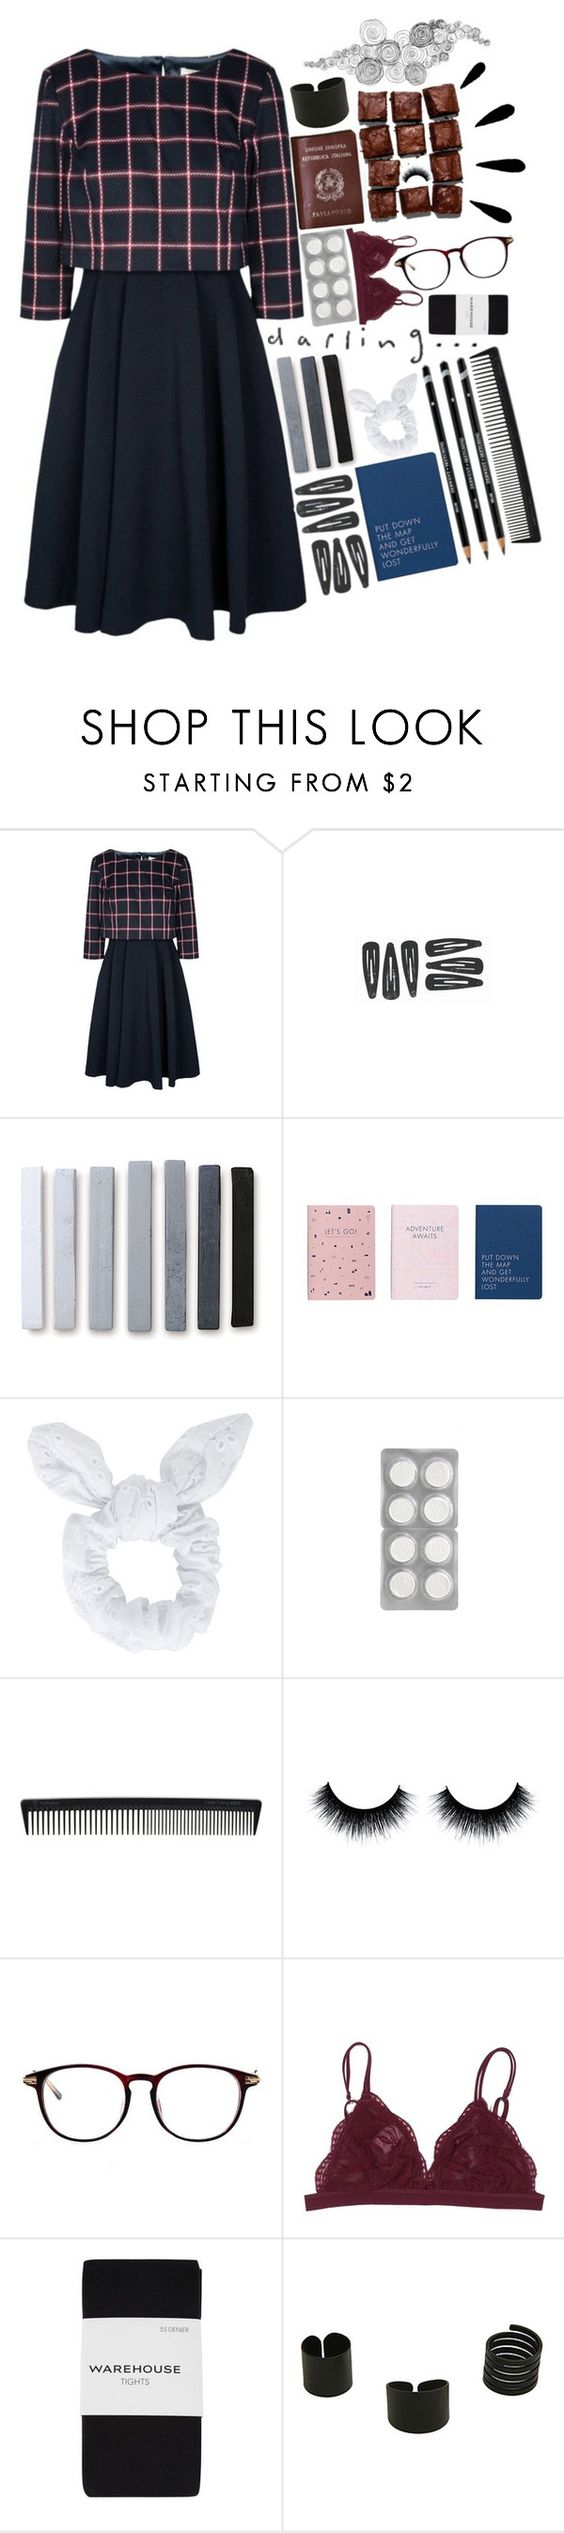 """""""Untitled #186"""" by marie-anderson-i ❤ liked on Polyvore featuring Relaxfeel, Topshop, T3, Warehouse and Old Navy"""